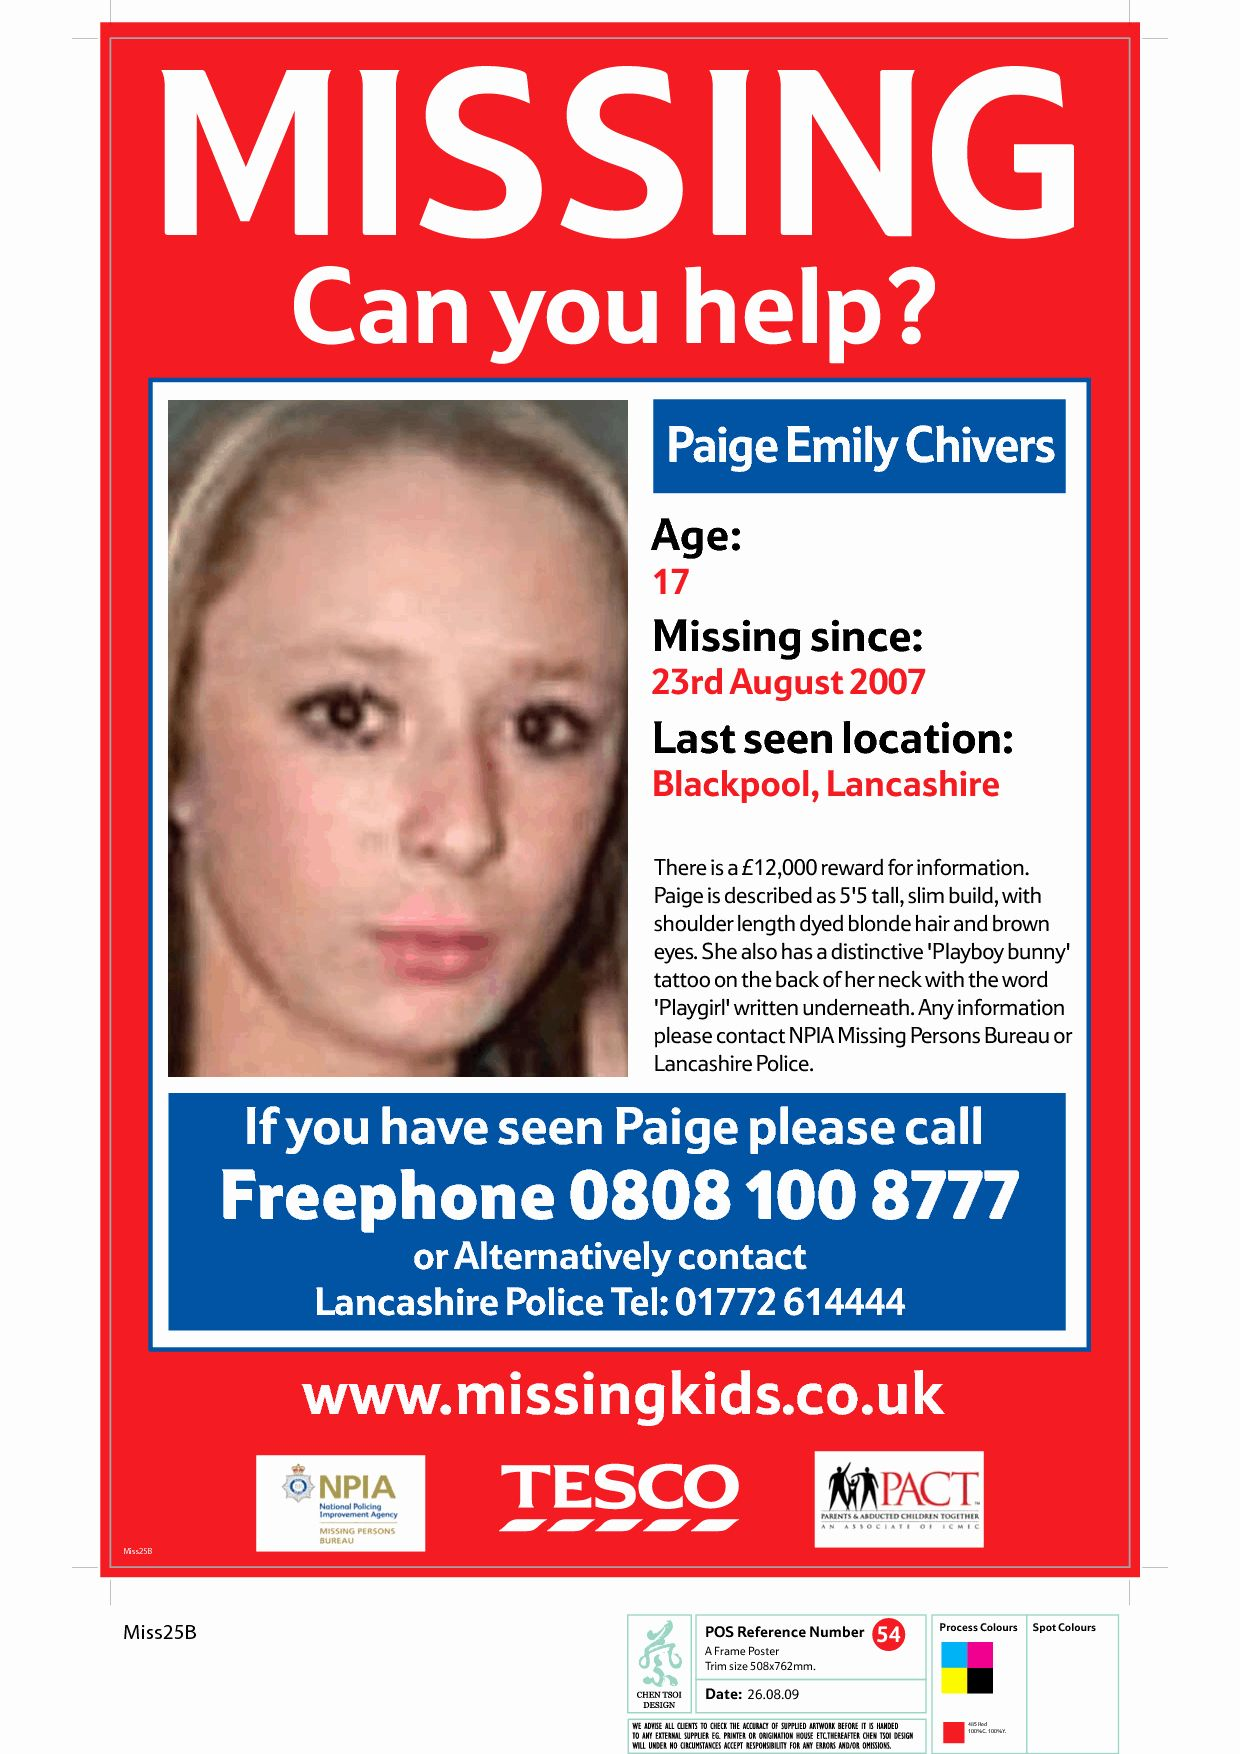 Missing Person Poster Template Awesome 10 Missing Person Poster Templates Excel Pdf Formats Poster Template Missing Persons Flyer Template